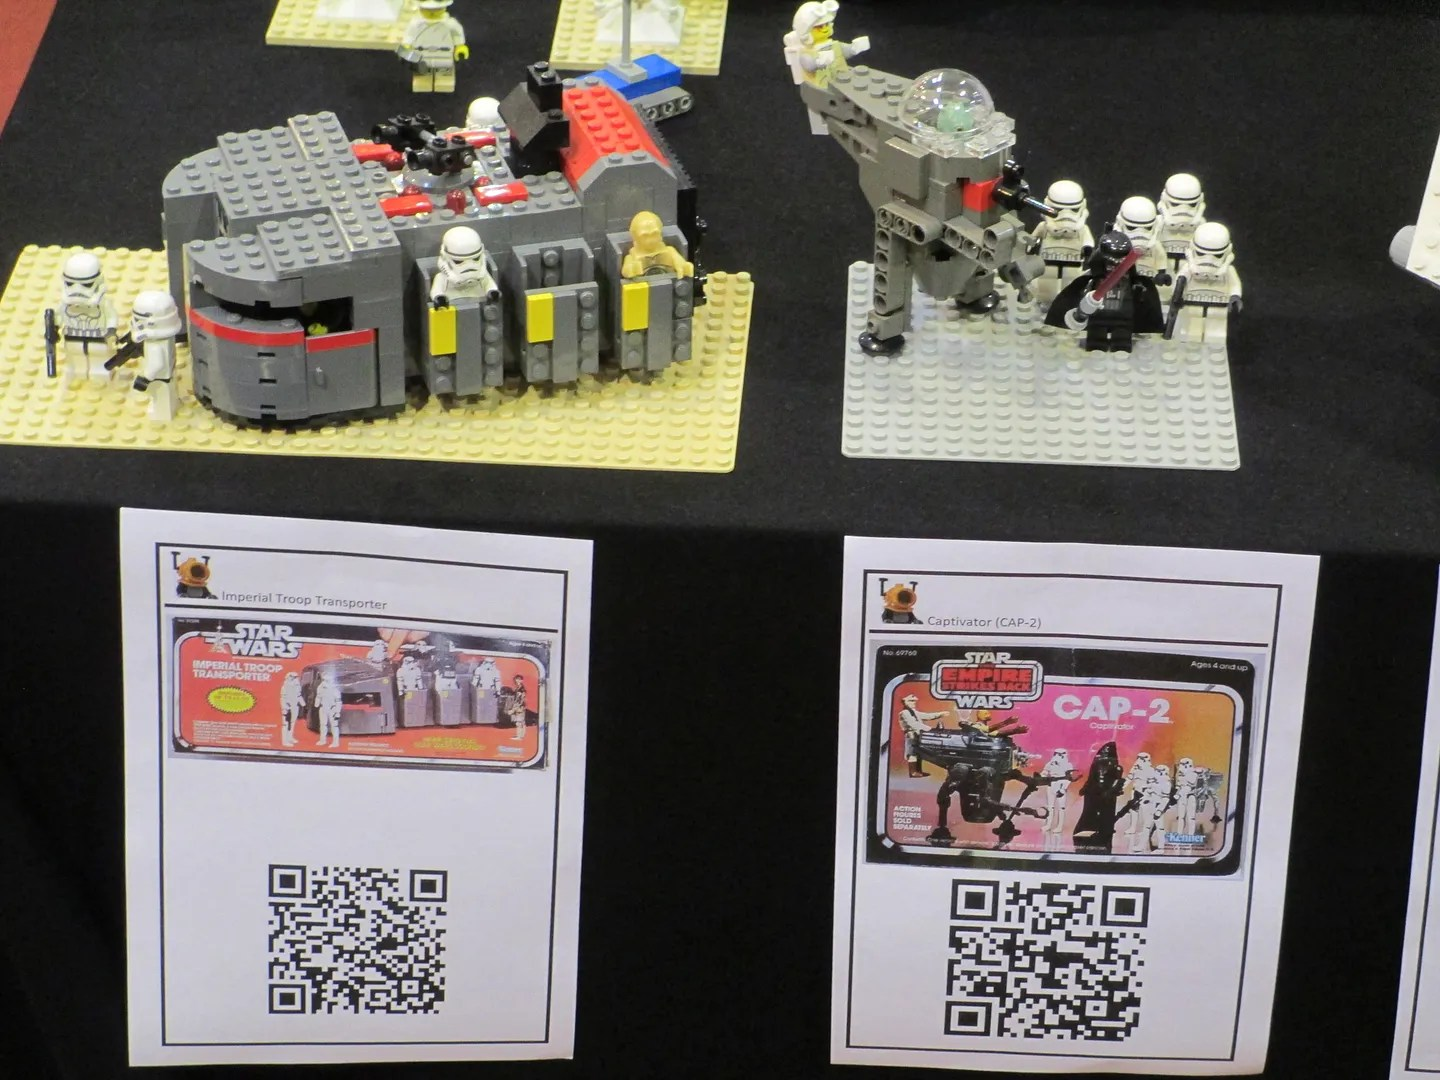 Lego Inspired Lego Inspired By Star Wars Vintage Vehicles